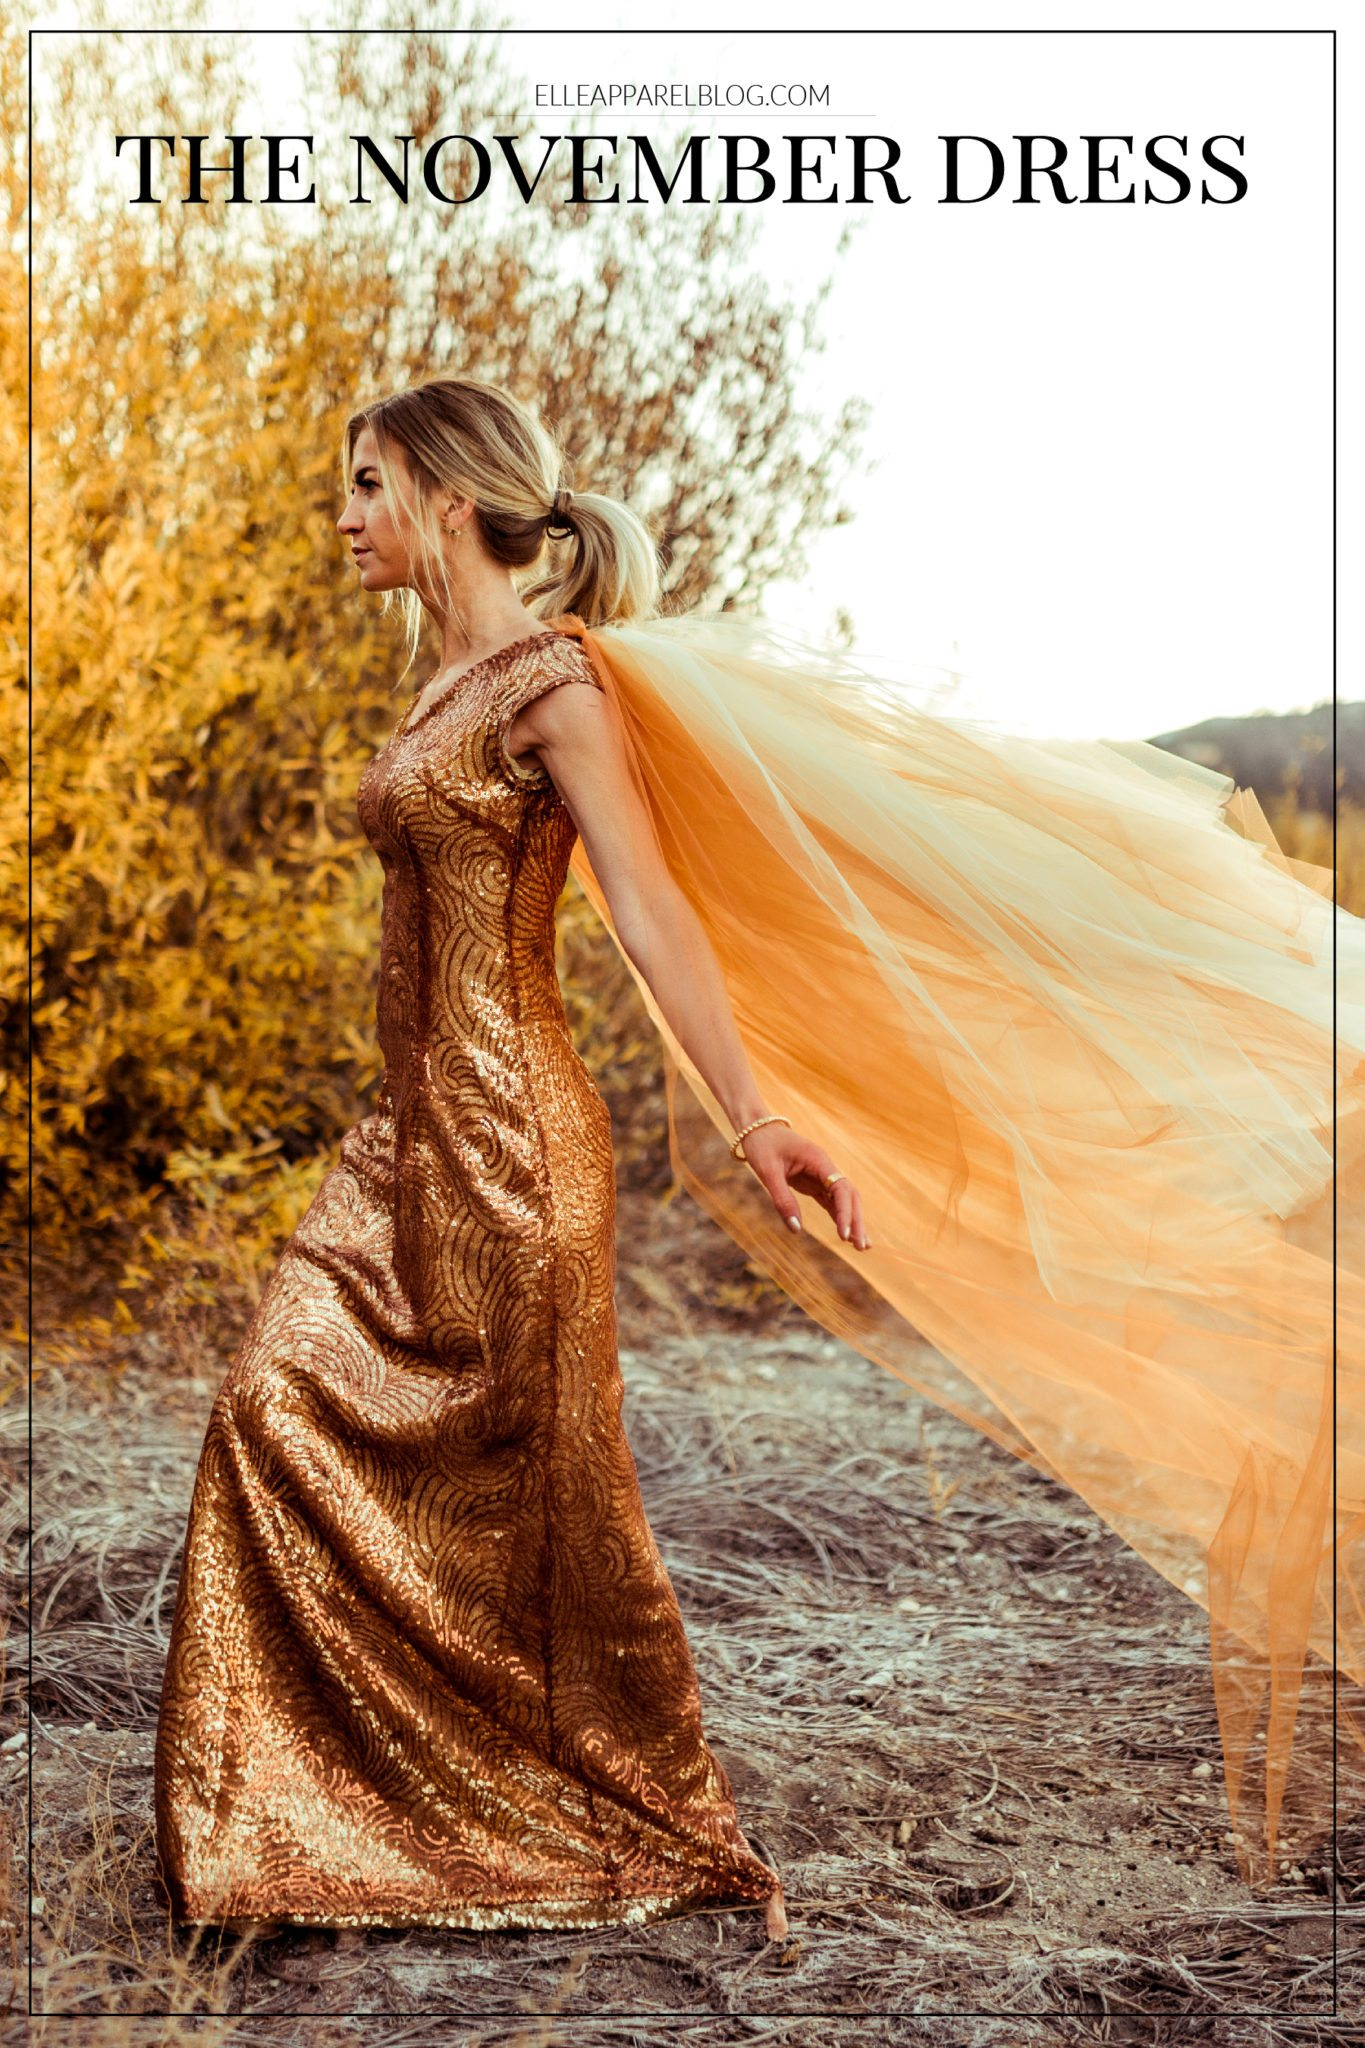 The November Dress by Leanne Barlow